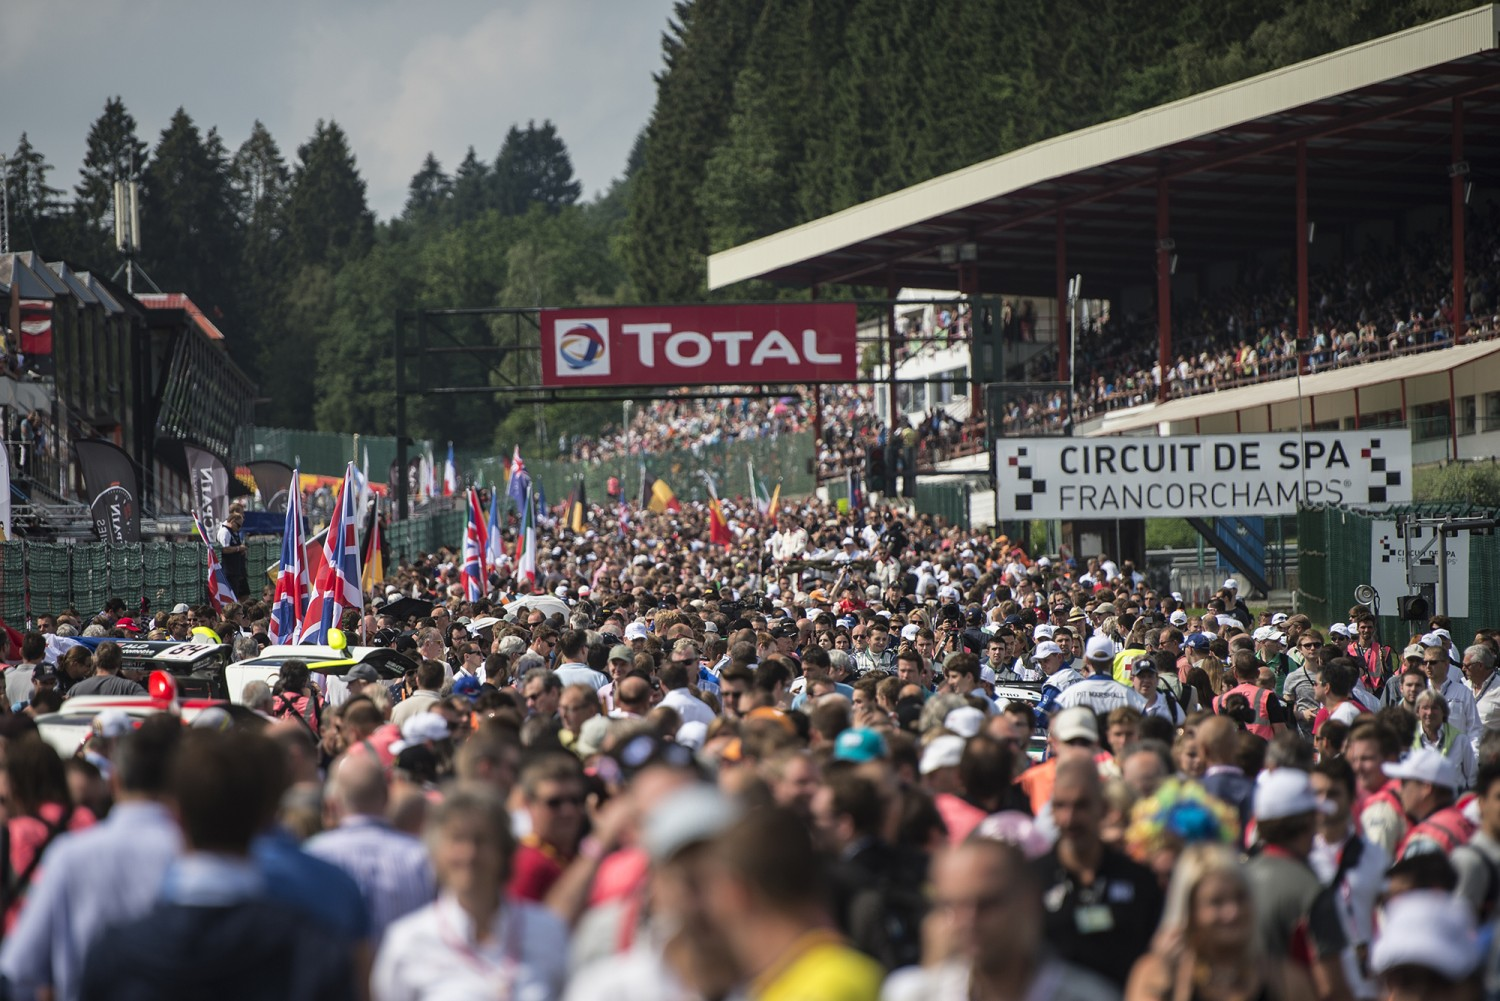 The 2014 Total 24 Hours of Spa in numbers